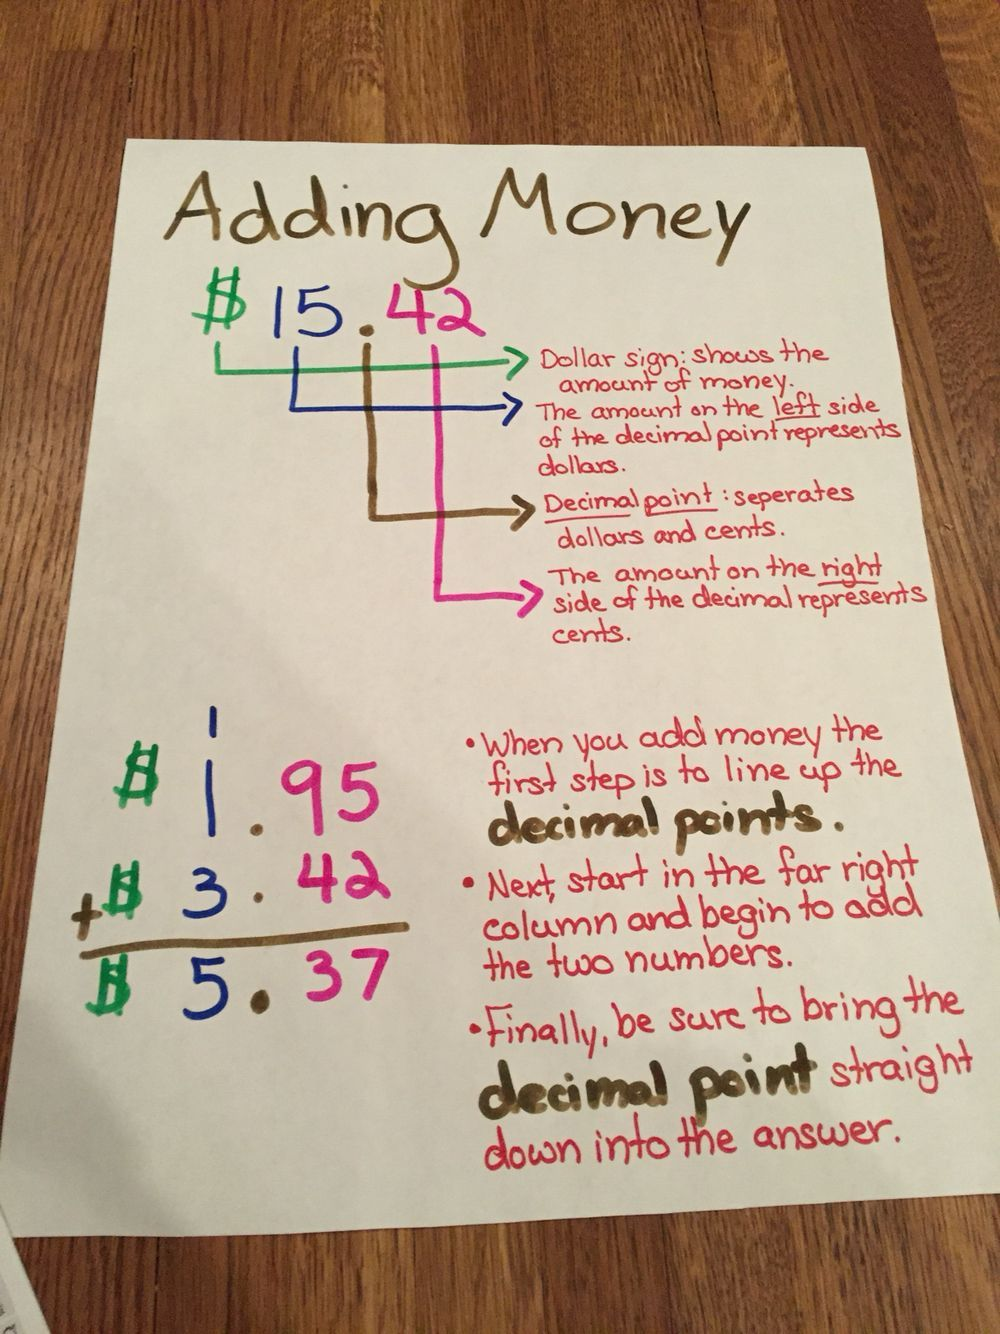 Adding And Subtracting Money Worksheets Printable Worksheets Are A Precious Lecture Room Tool They Now Not In 2021 Money Anchor Chart Adding Money Money Worksheets Adding money worksheets year 5